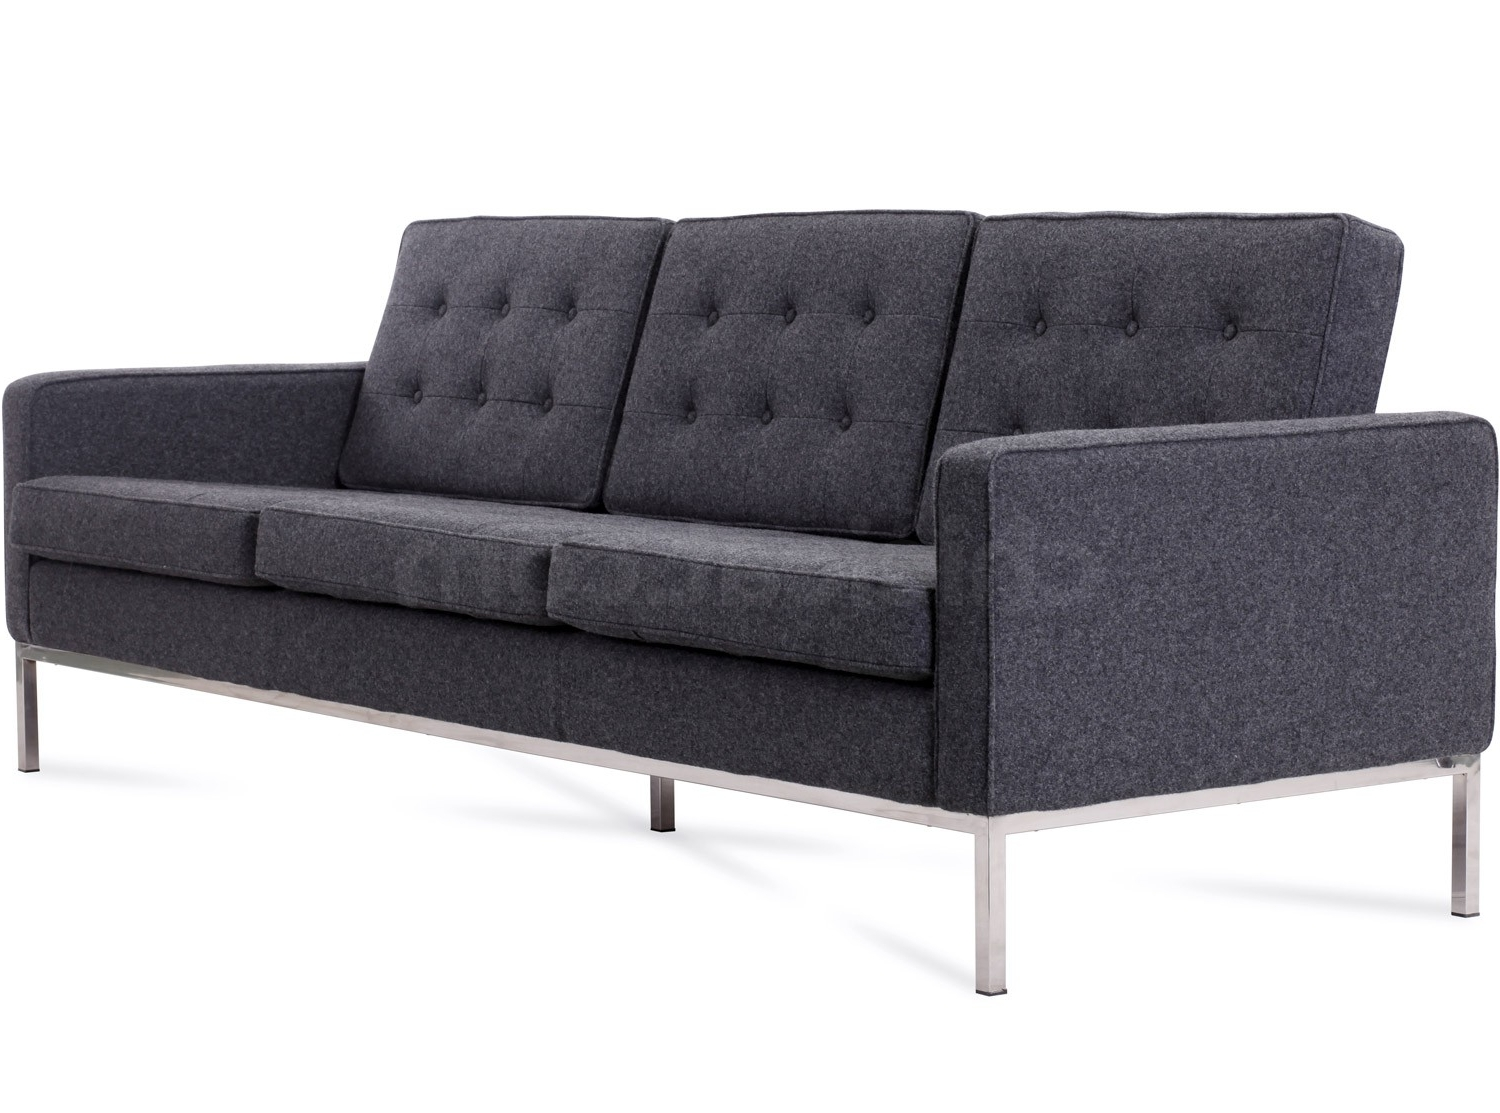 Florence Large Sofas Intended For Popular Florence Knoll Sofa 3 Seater Wool (Platinum Replica) (View 12 of 15)